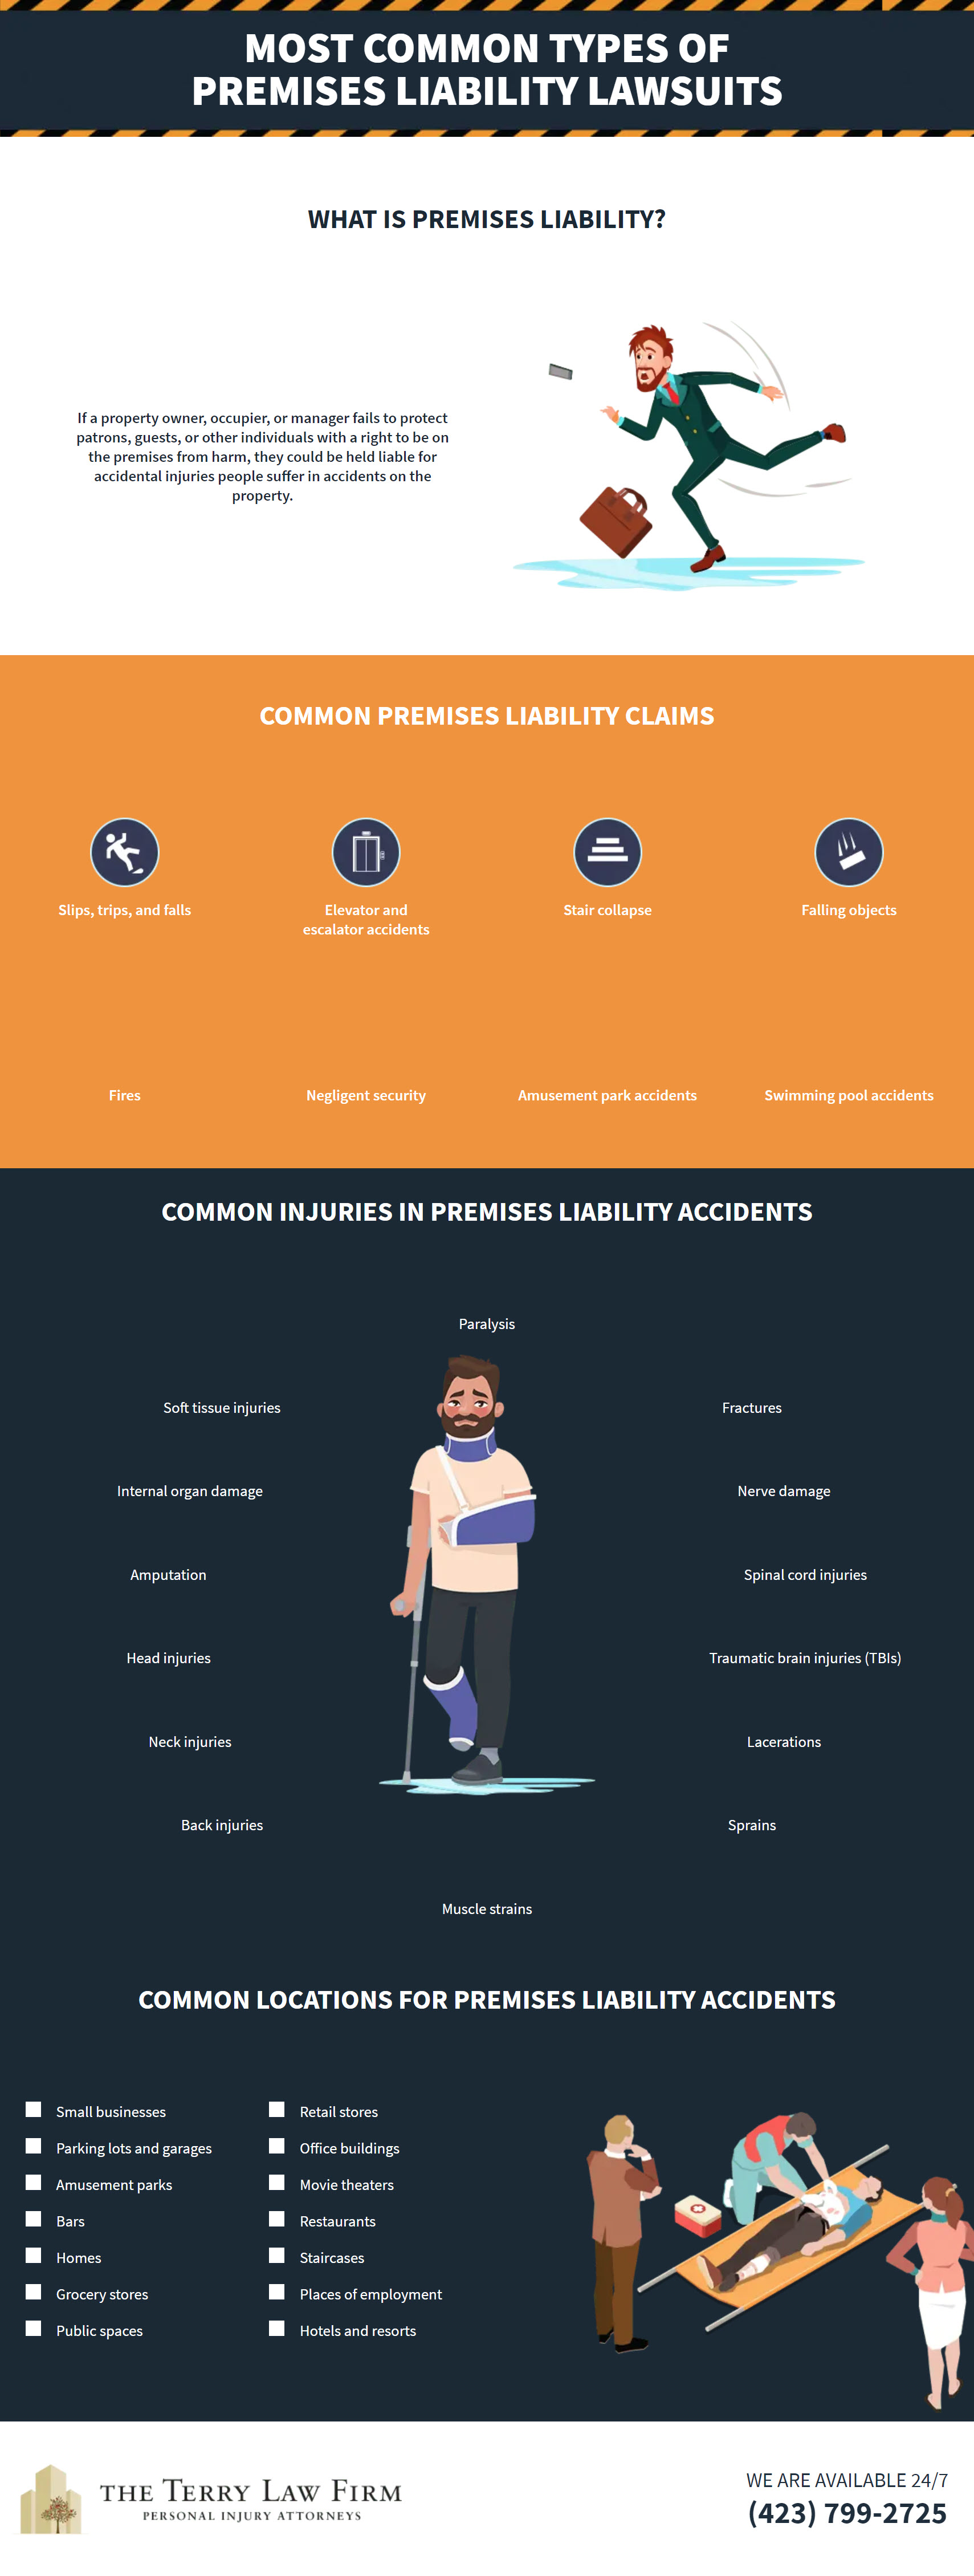 Most Common Types of Premises Liability Lawsuits